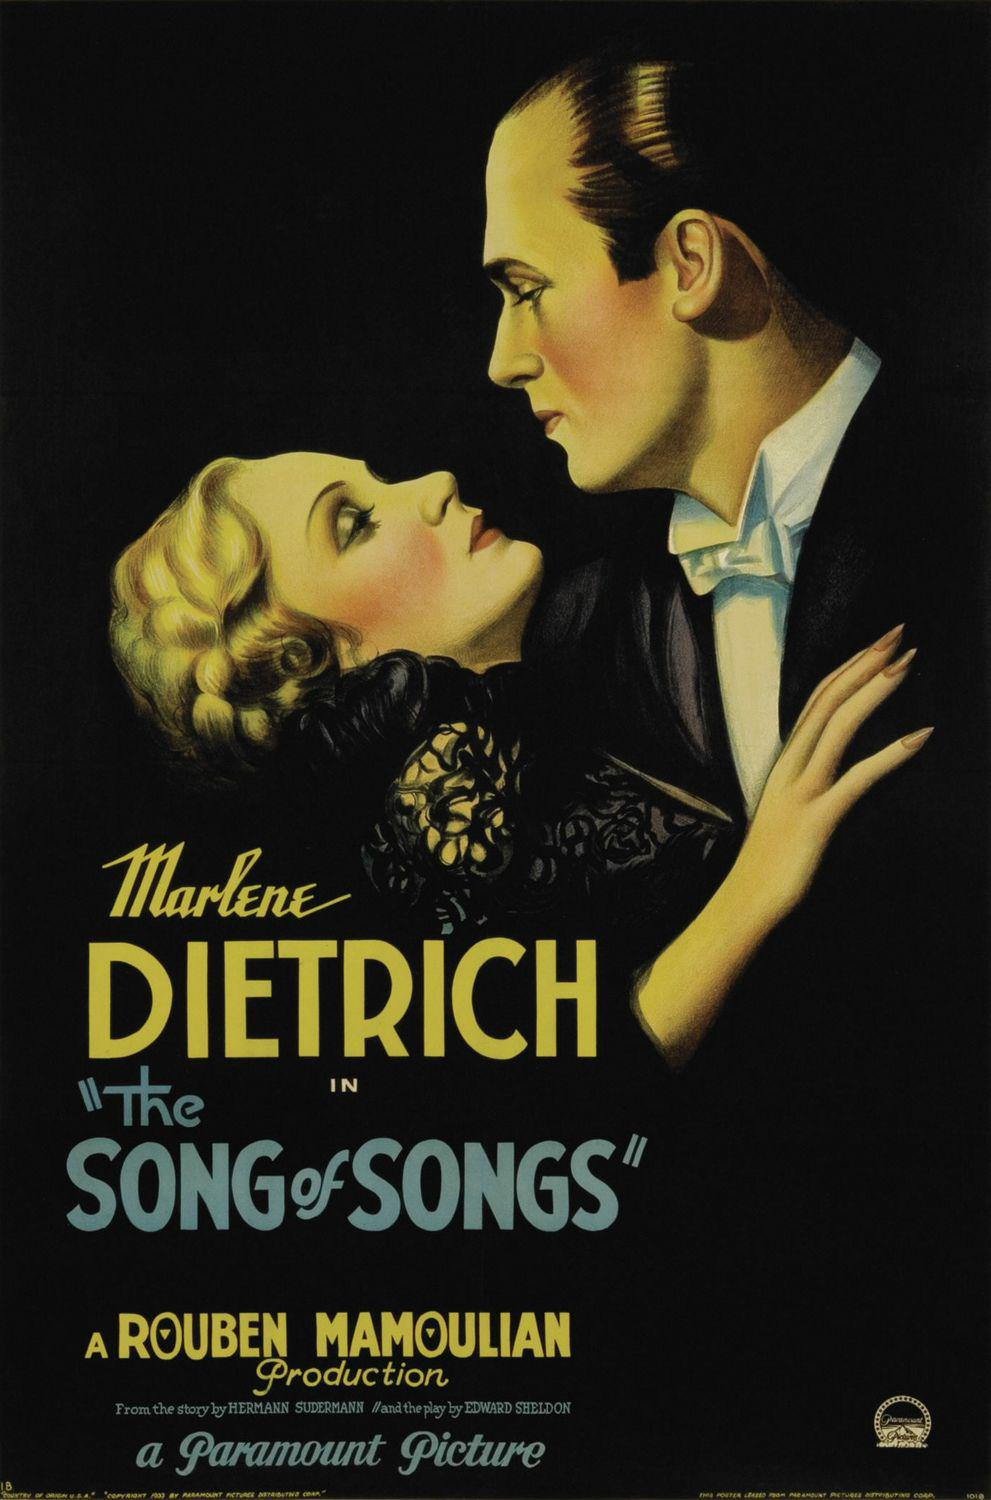 Song of Songs - old classic cult film poster - Marlene Dietrich - Rouben Mamoulian production from the story of Hermann Sudermann